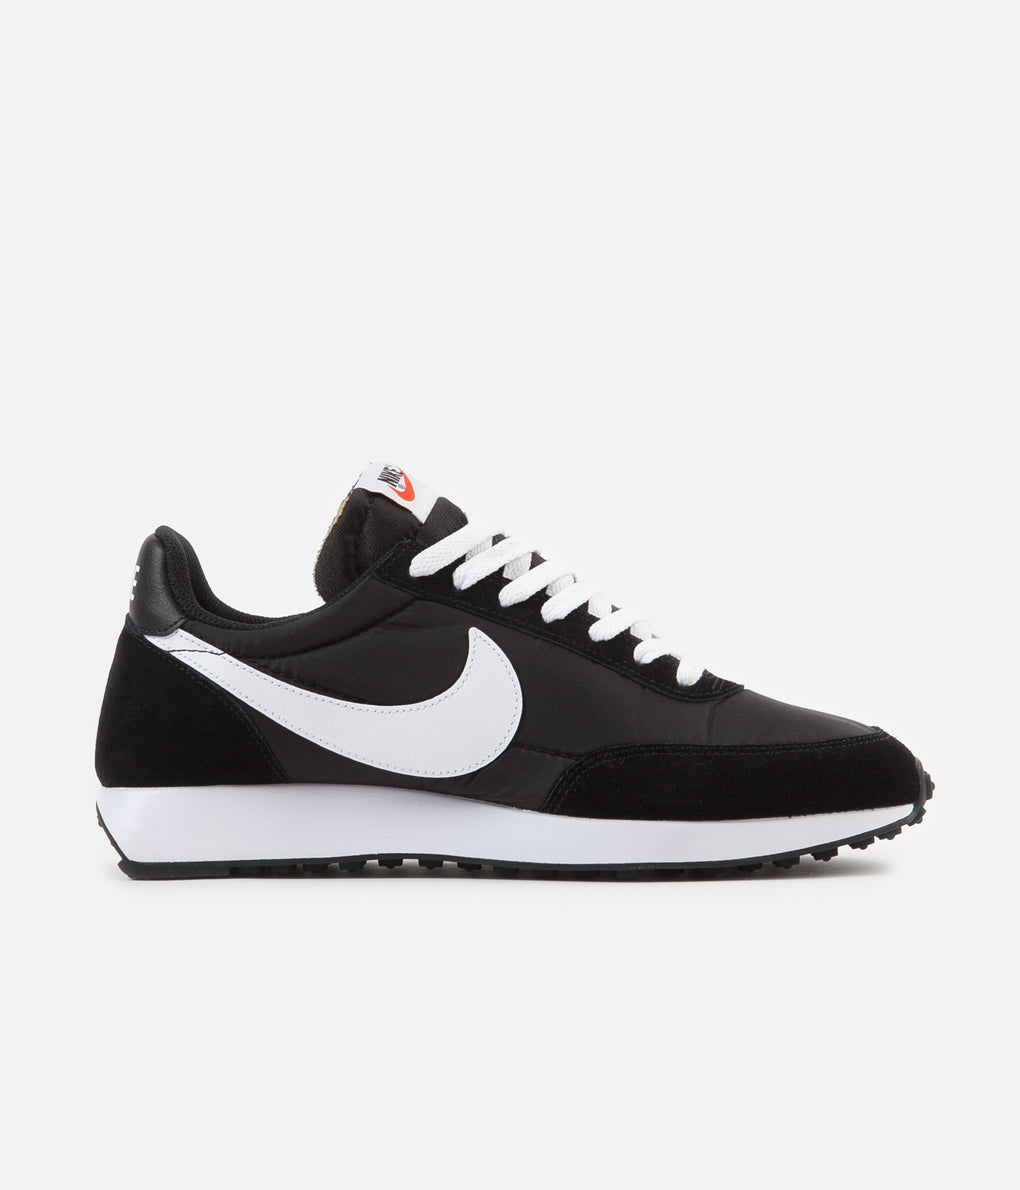 Nike Air Tailwind 79 Shoes - Black - Black / White - Team Orange